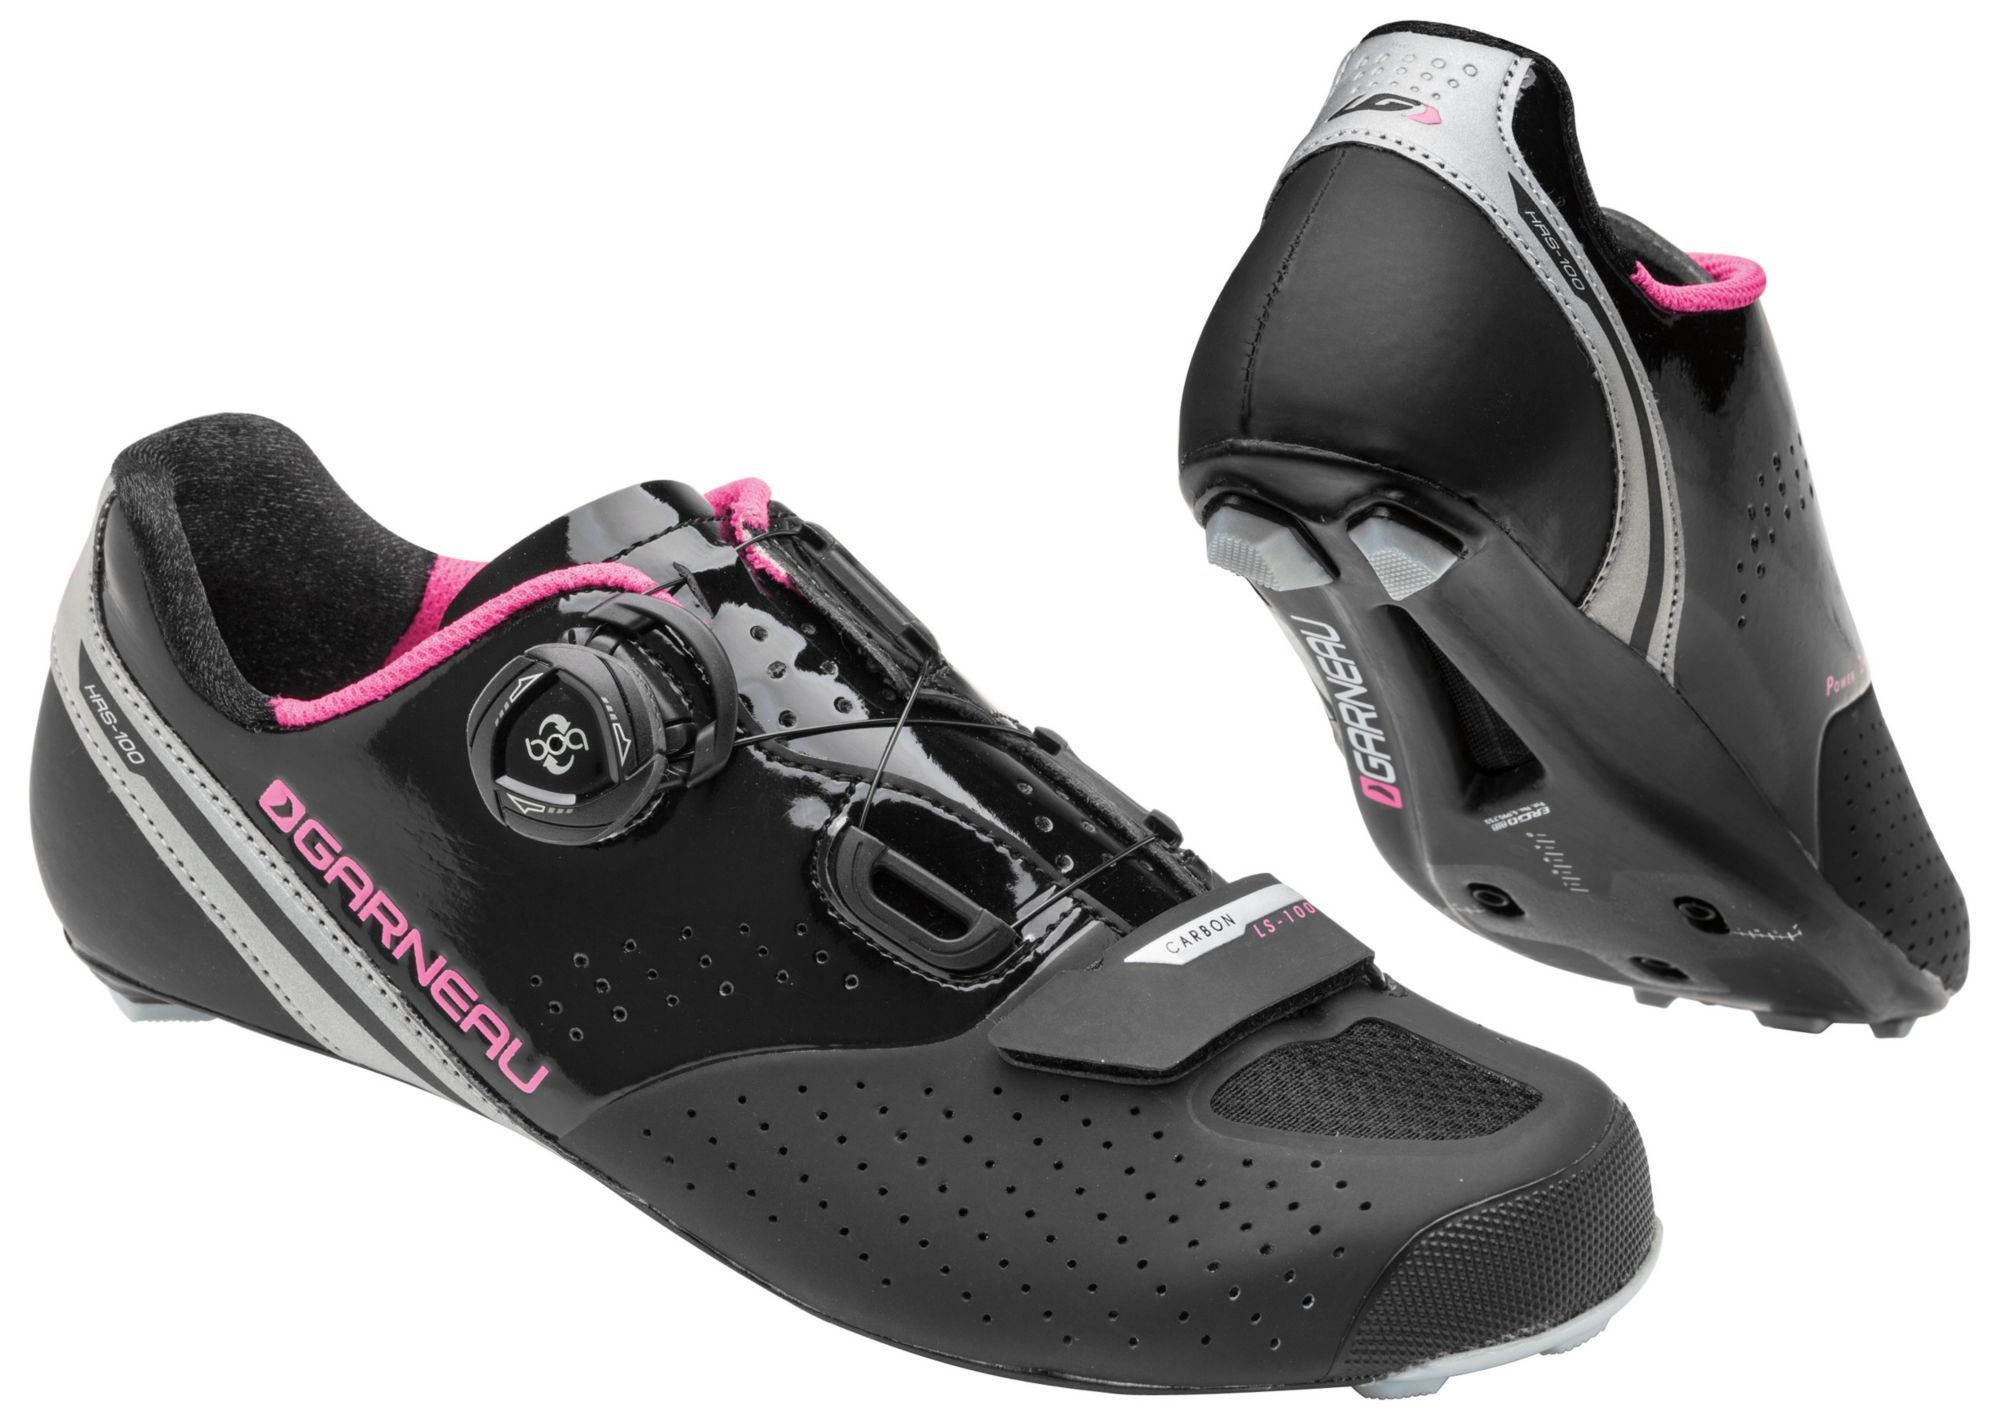 19 All Time Best Tennis Shoes For Women Ideas Cycling Shoes